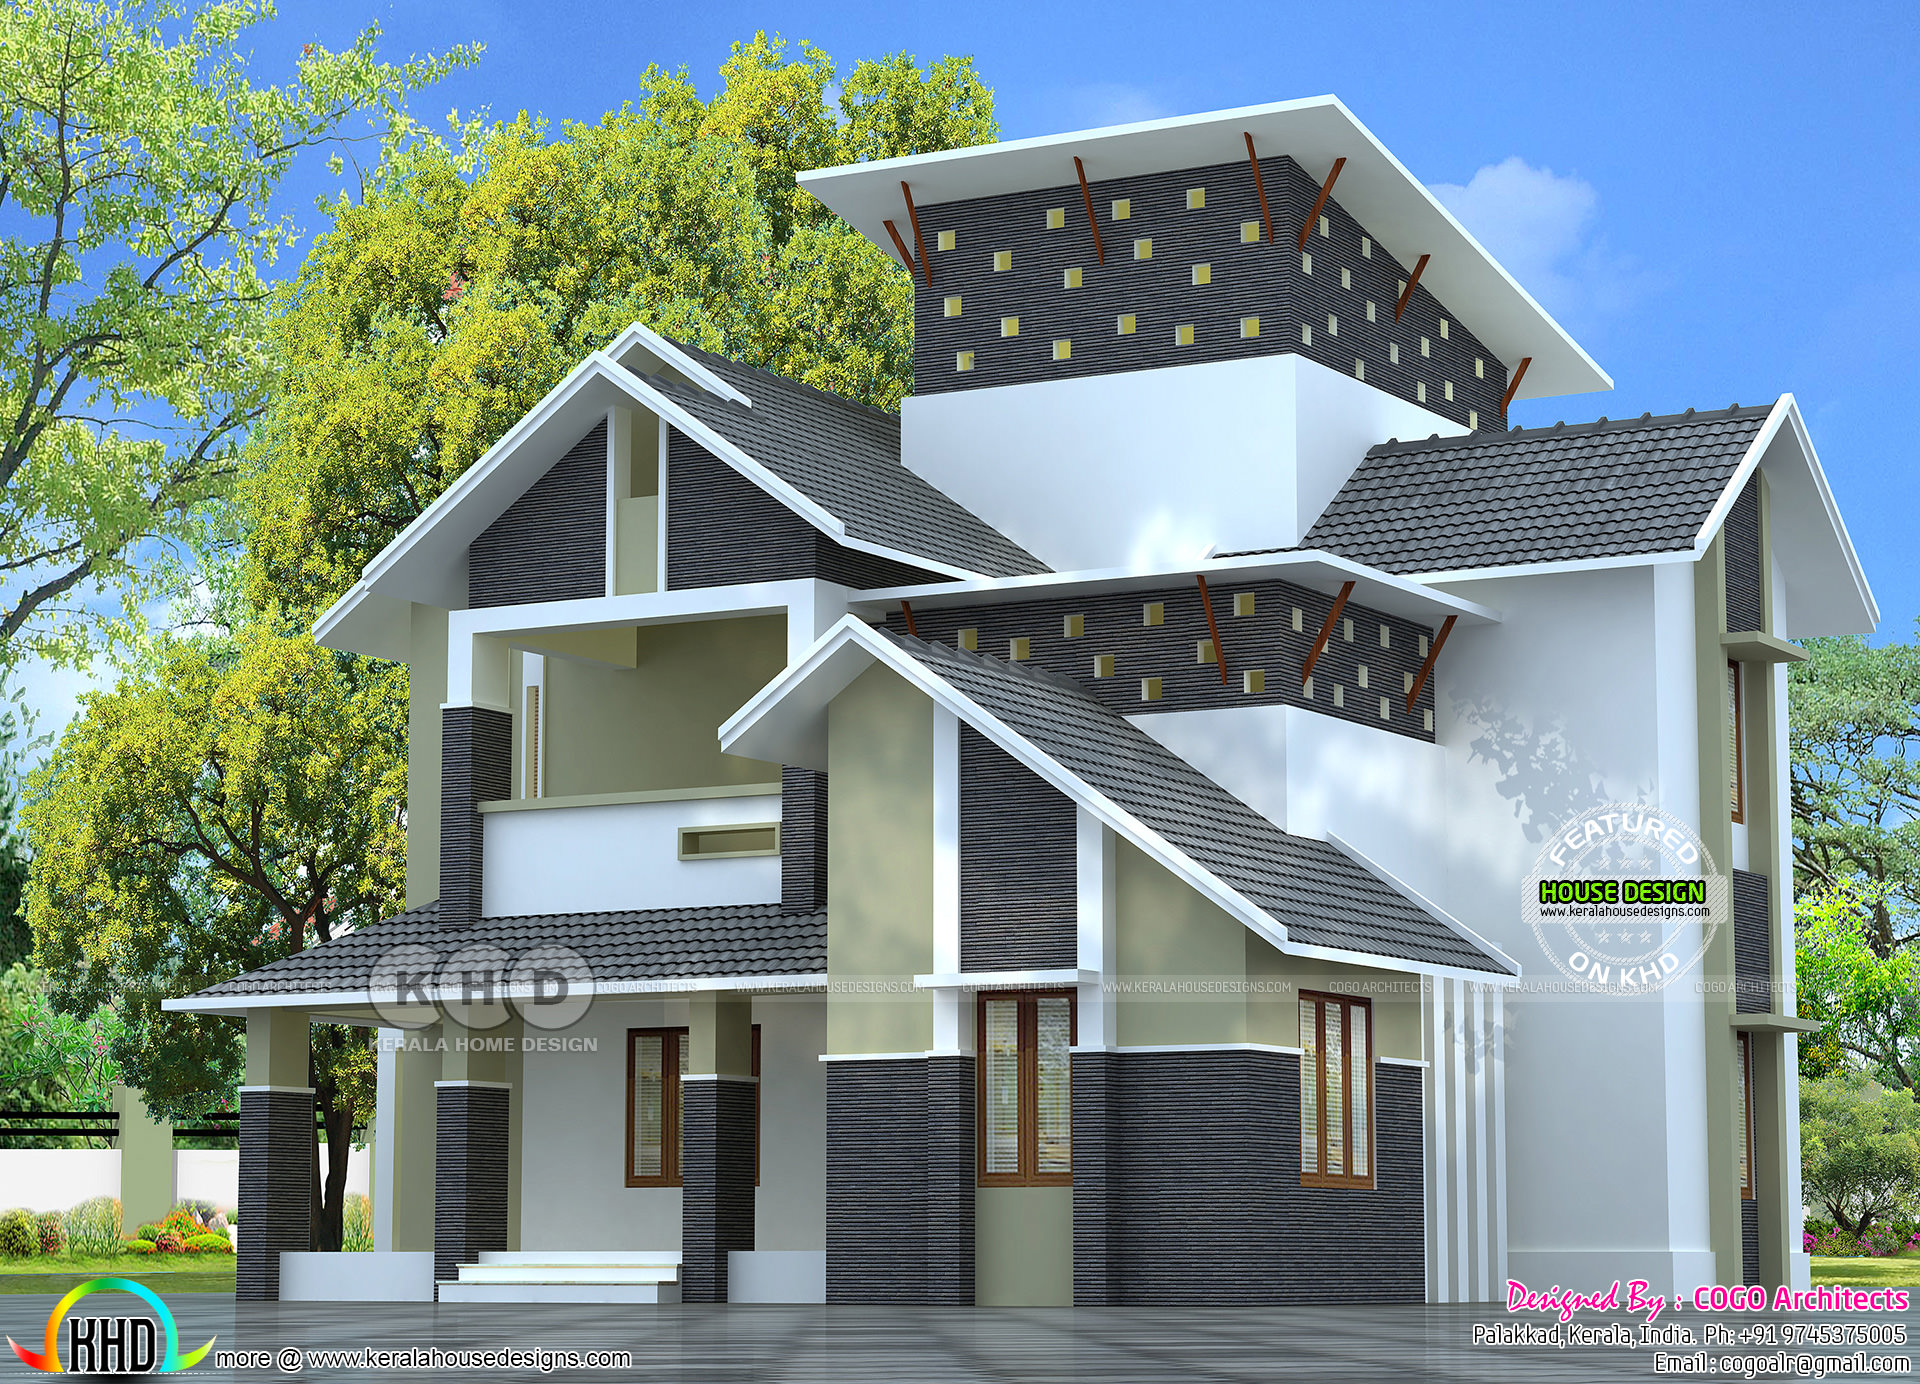 Slooping roof modern sloping roof home for Slope home design